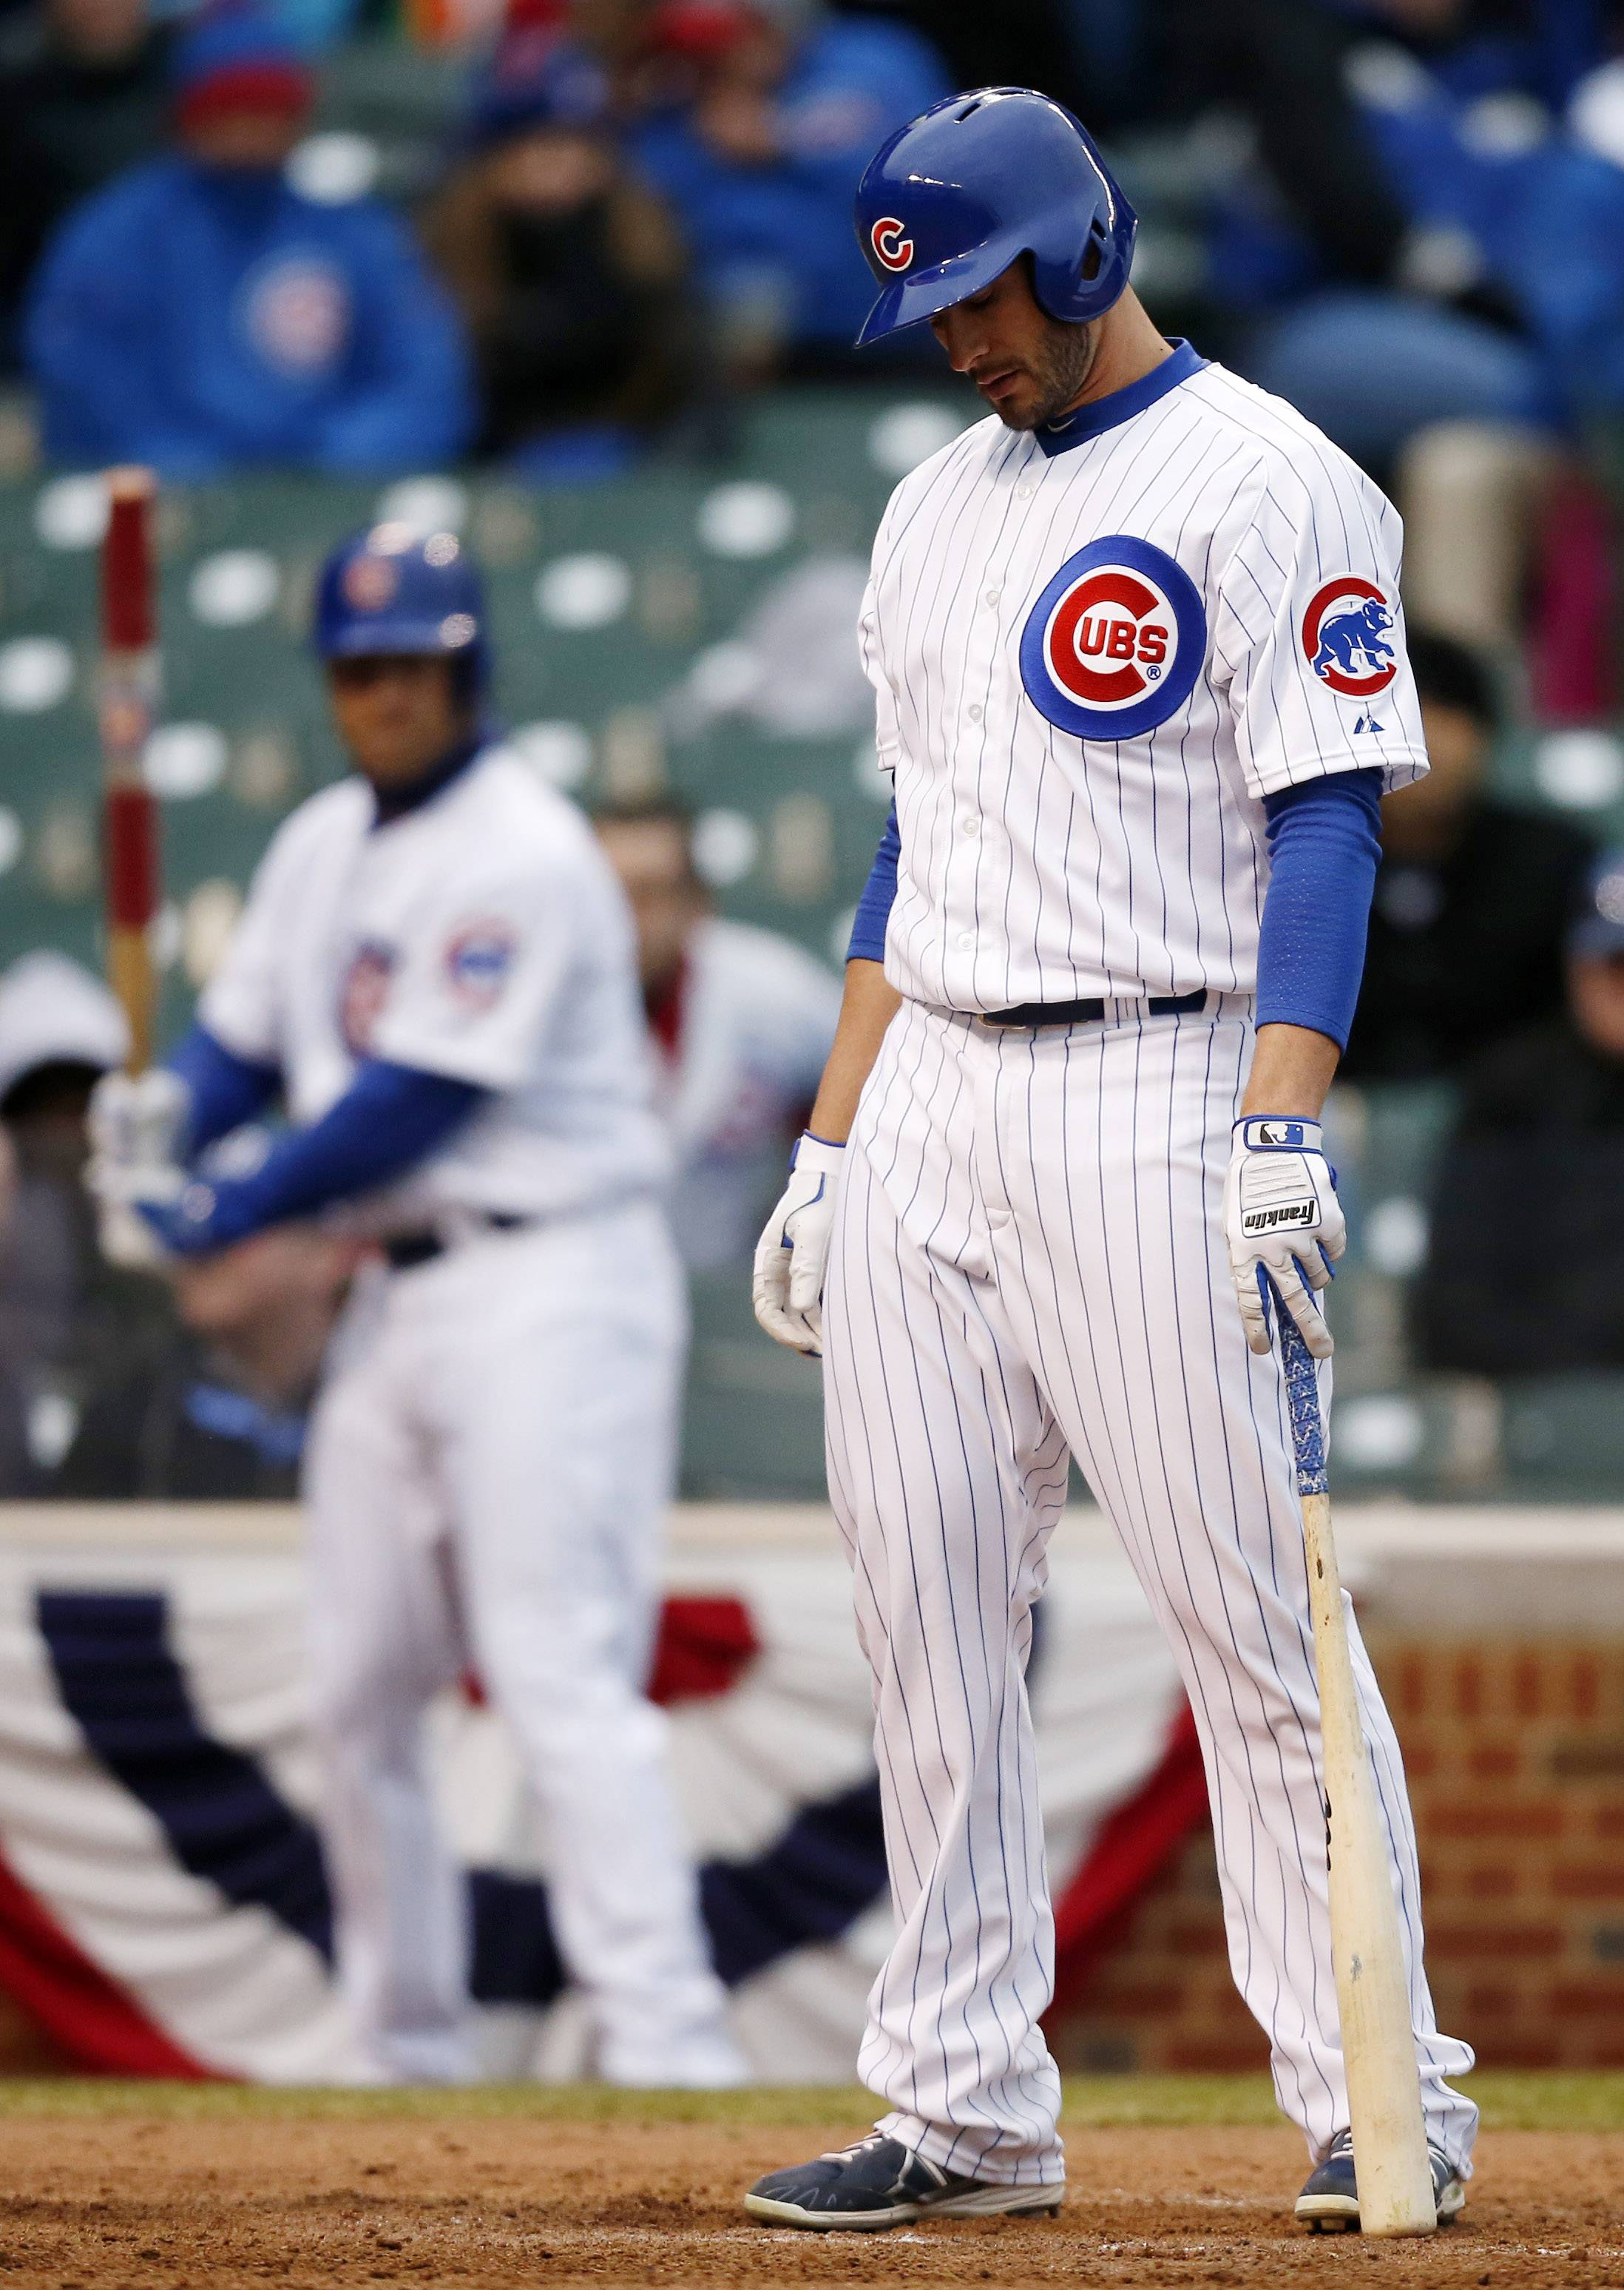 Chicago Cubs Justin Ruggiano reacts after striking out against the Philadelphia Phillies during the ninth inning of a baseball game on Friday, April 4, 2014, in Chicago.